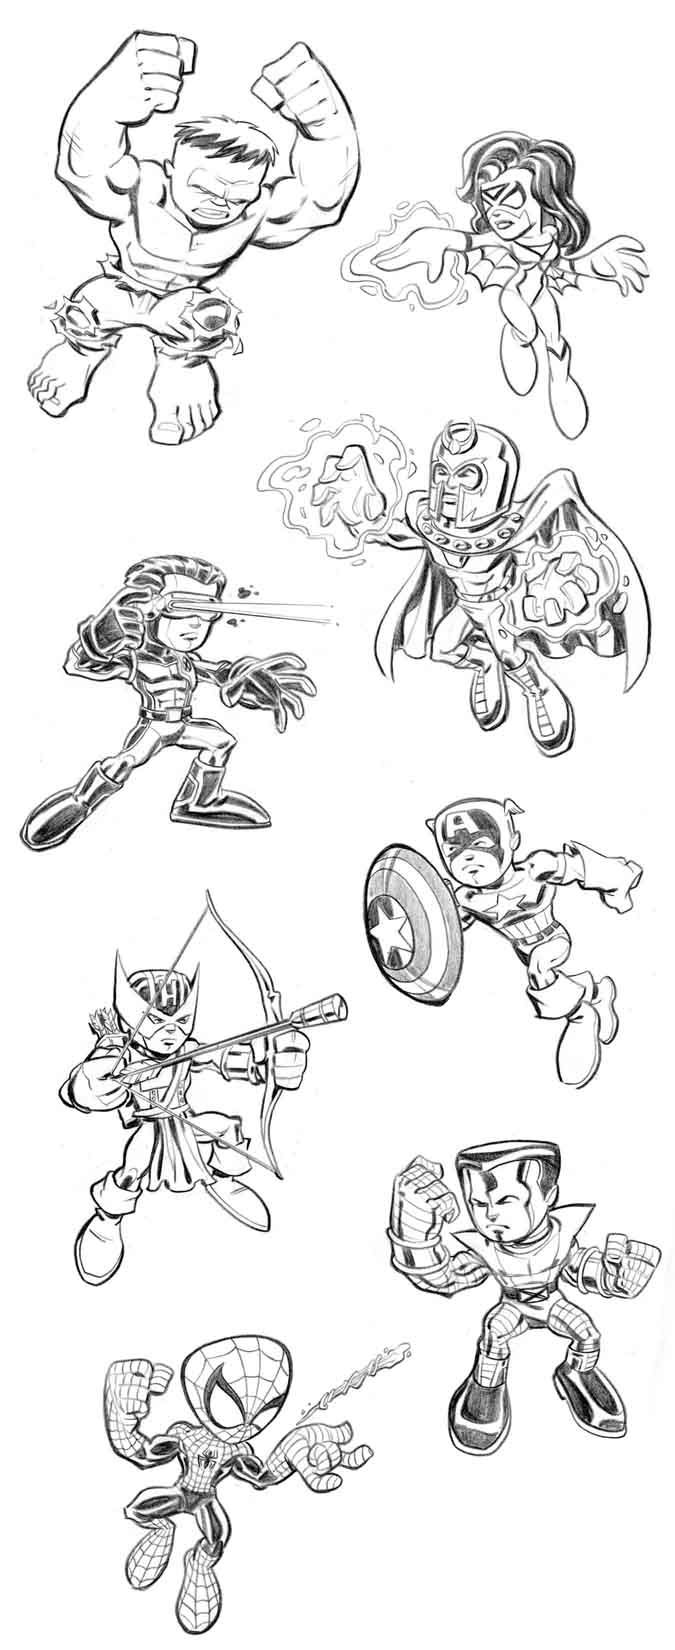 Coloring book pages avengers - Coloring To Print Famous Characters Lego Number 45165 Superhero Coloring Pages To Print